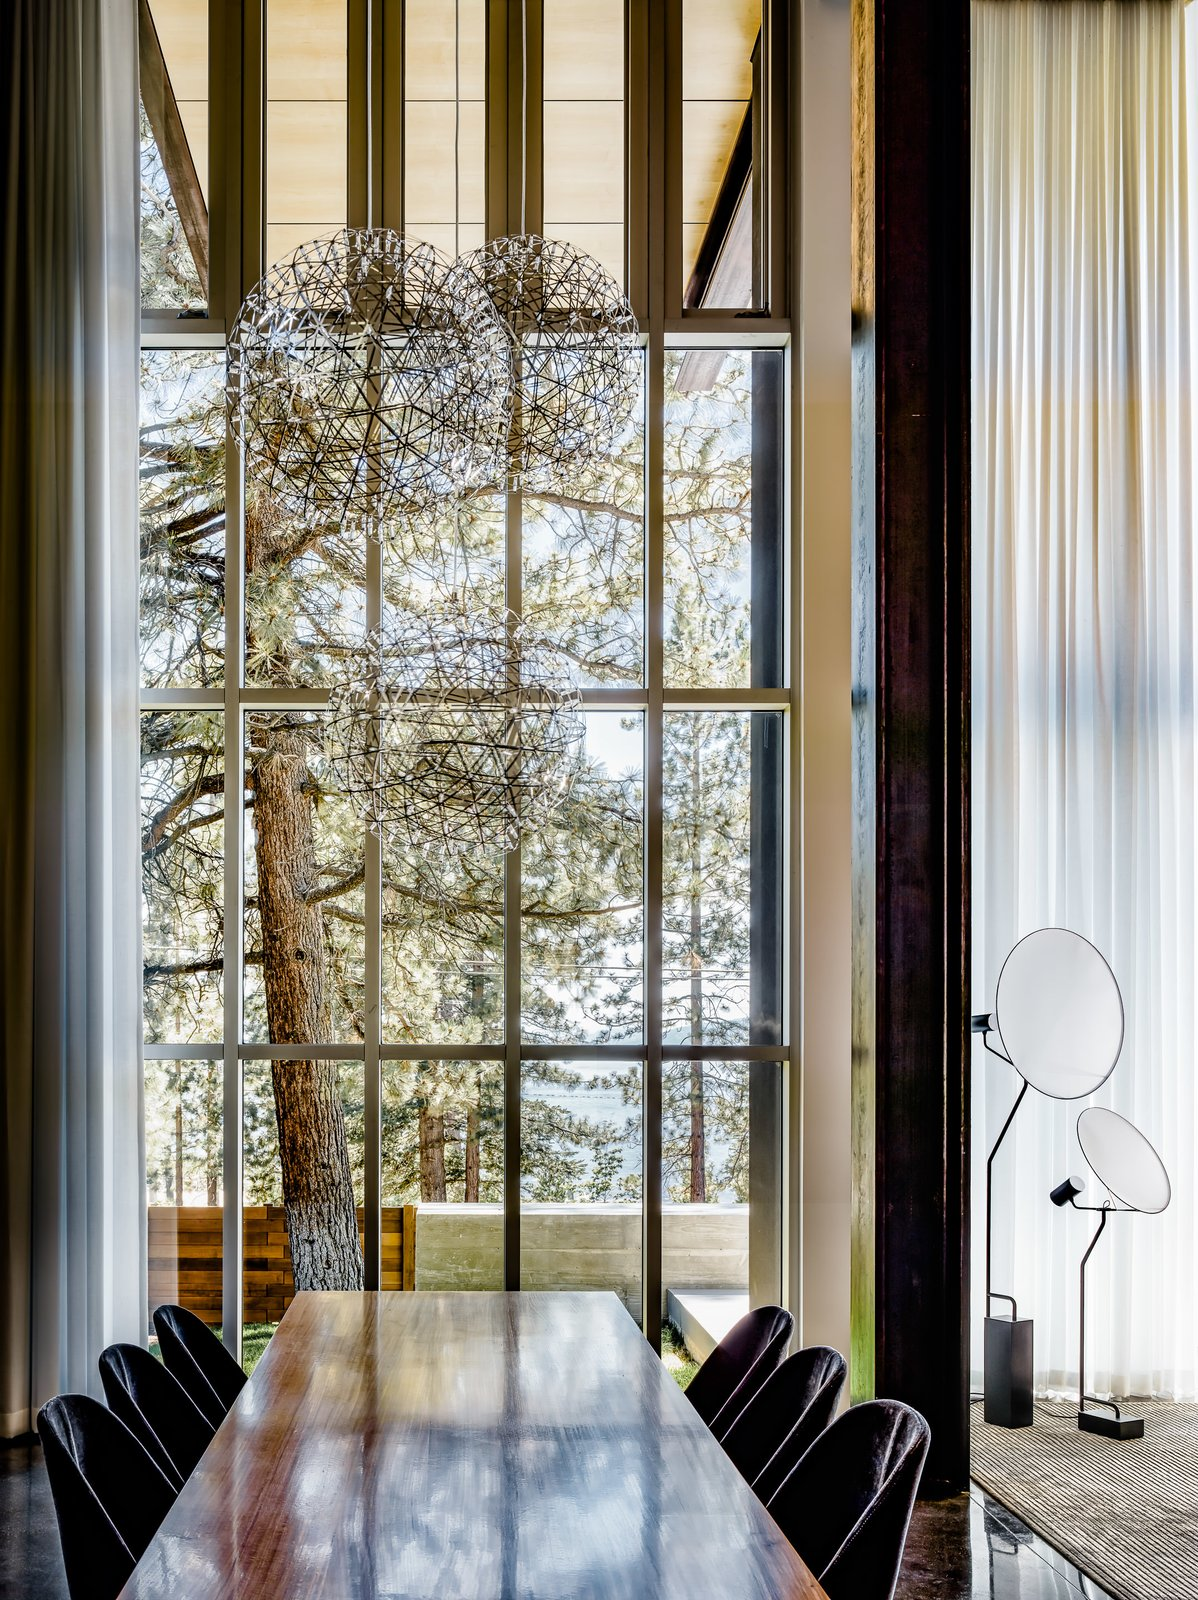 Dining Room, Chair, Pendant Lighting, Table, and Concrete Floor The extensive glazing provides a strong sense of the surrounding nature.  Photo 6 of 18 in An Uplifting Lake Tahoe Retreat Uses Light as a Building Material